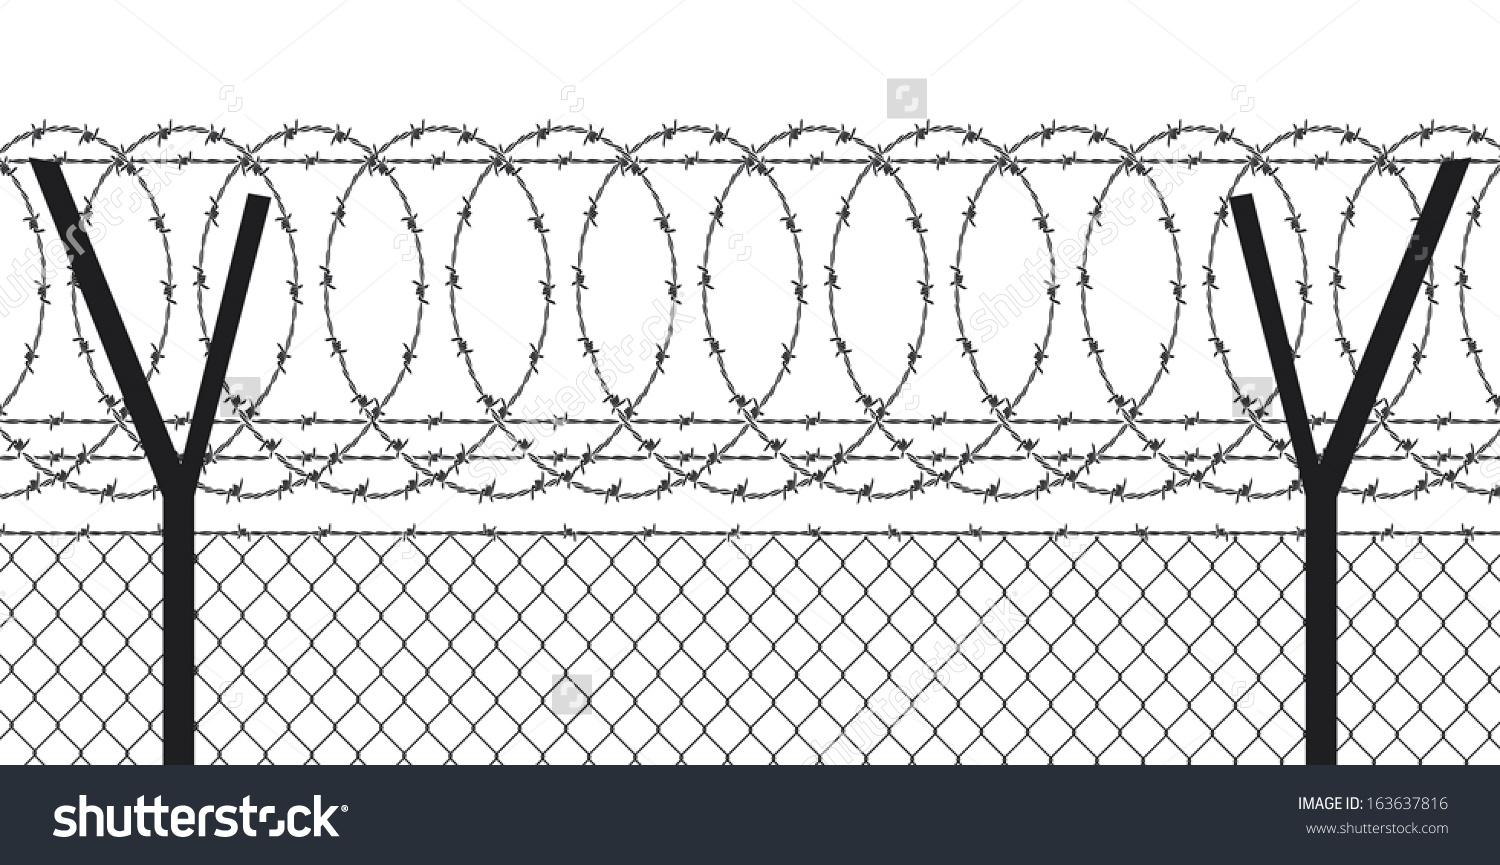 Barbed Wire Fence Stock Vector 163637816.